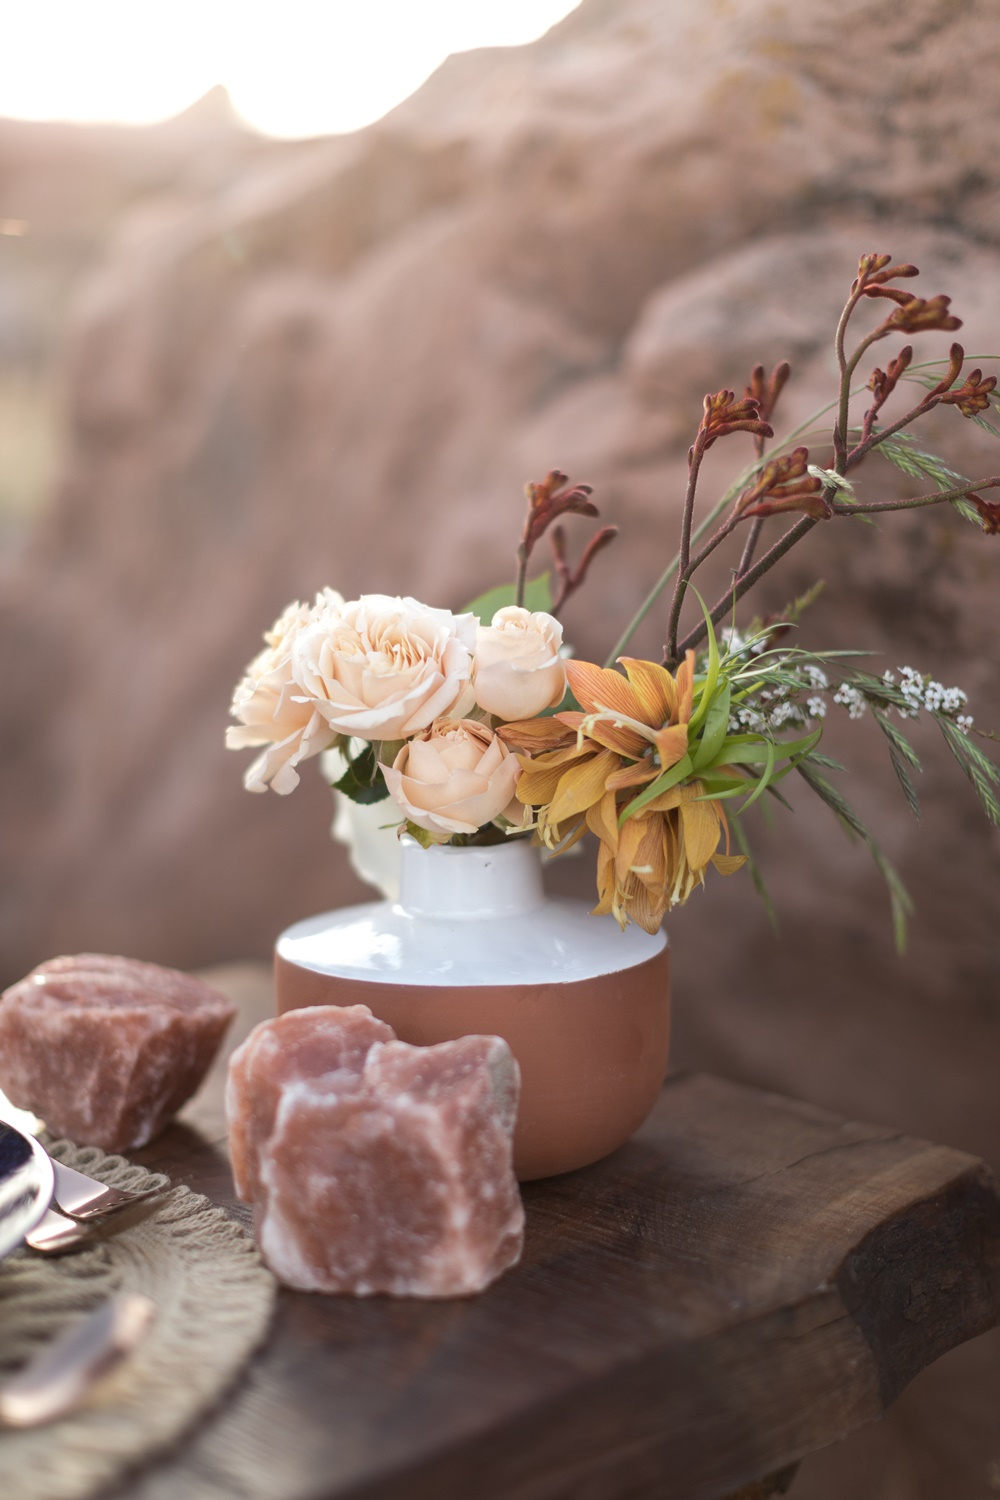 zion glamping centerpiece